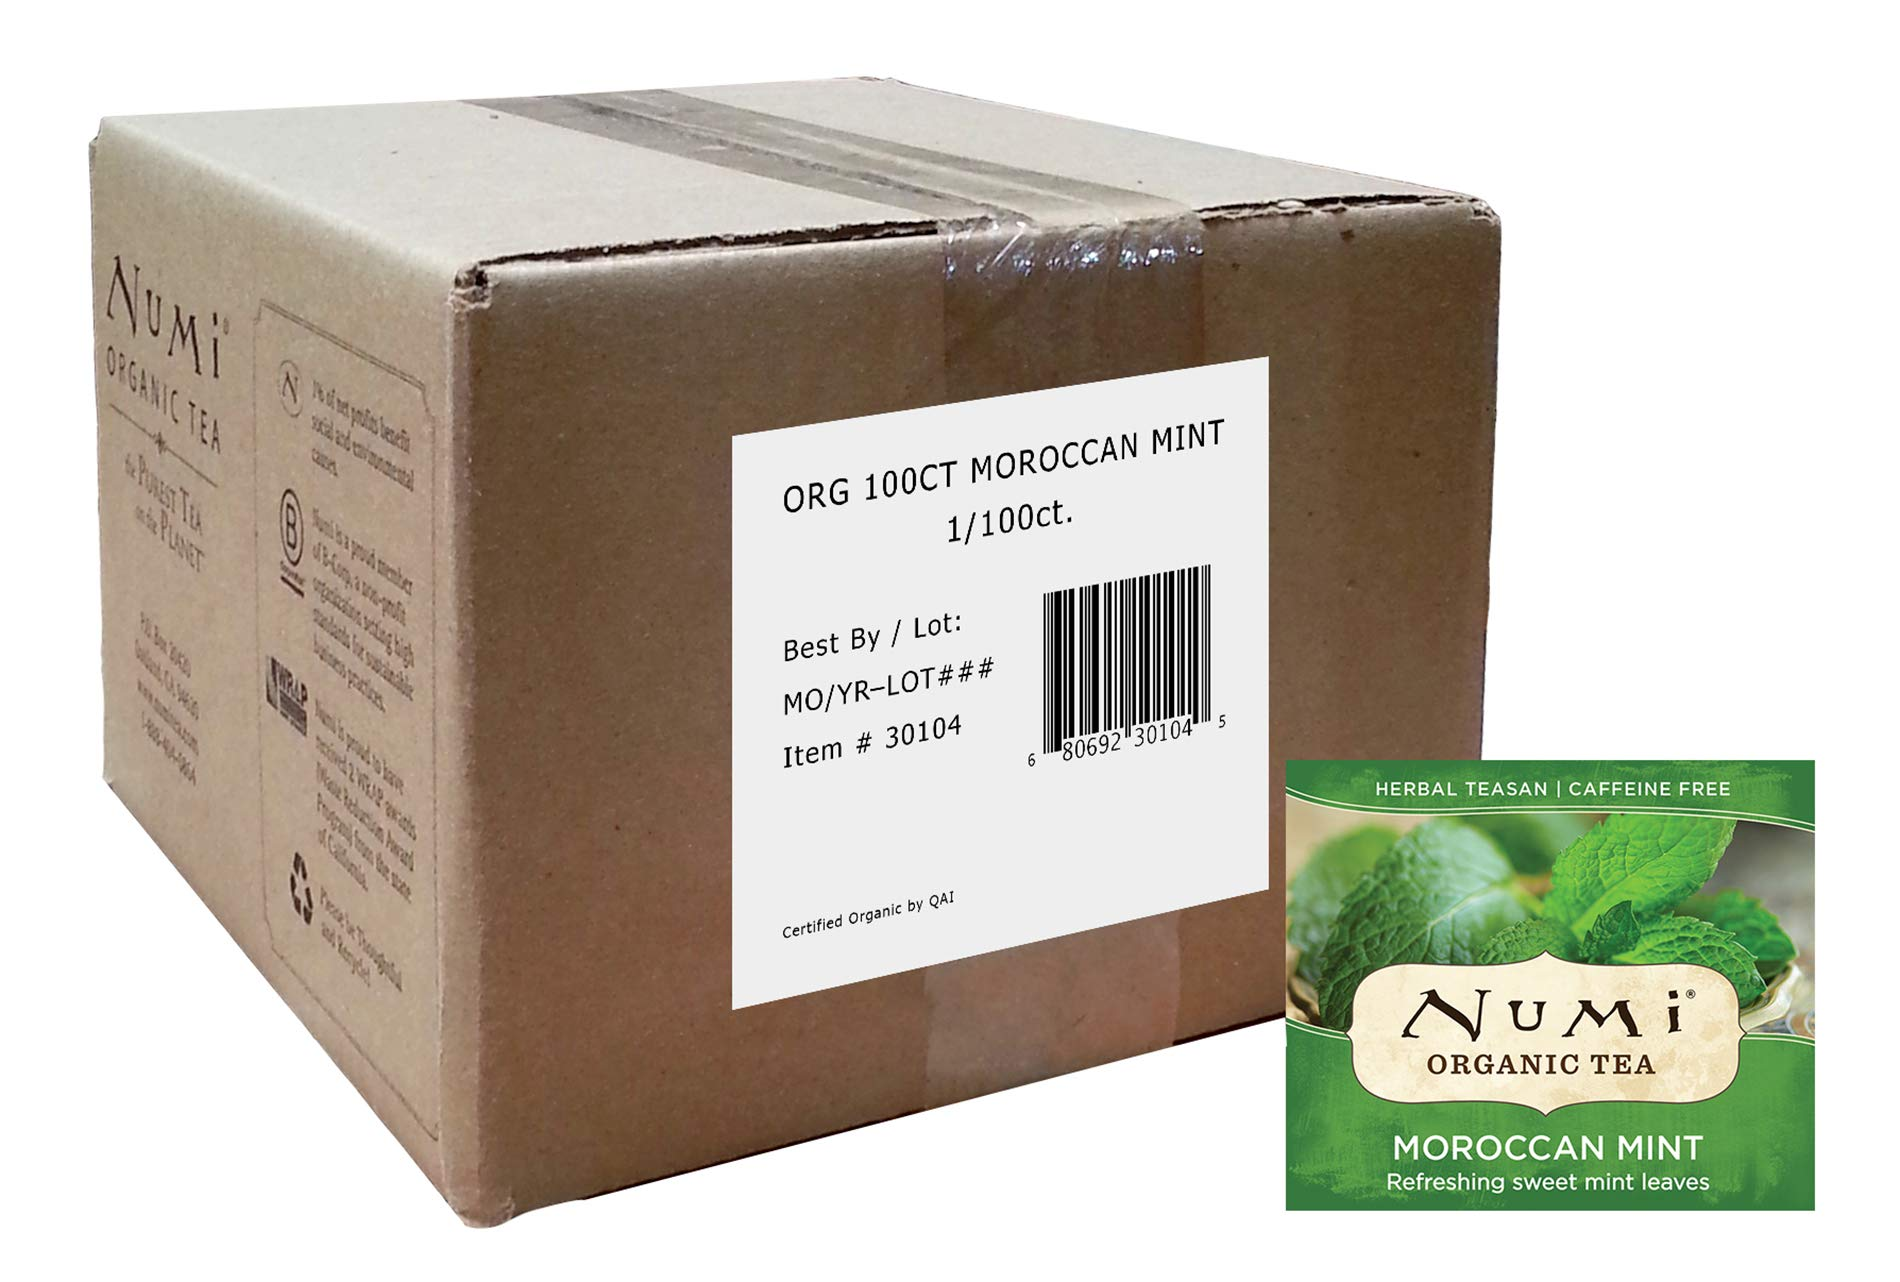 Numi Organic Tea Moroccan Mint, 100 Count Box of Tea Bags, Herbal Teasan (Packaging May Vary)